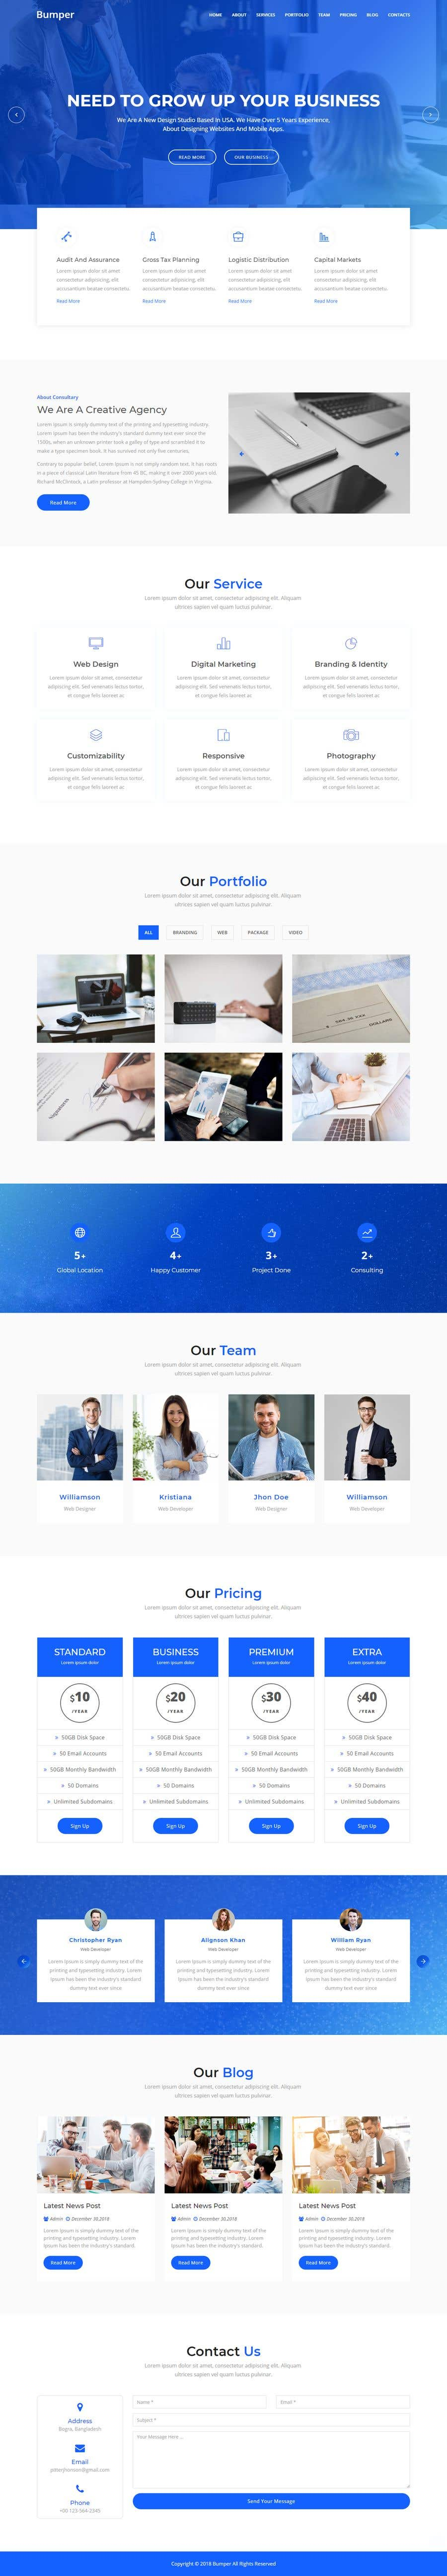 """Intrarea #8 pentru concursul """"Design smooth, elegant, luxurious, classy, sleek, BUT SIMPLE website for cutting edge technology consulting services. High tech, custom and special systems, futuristic technology company."""""""